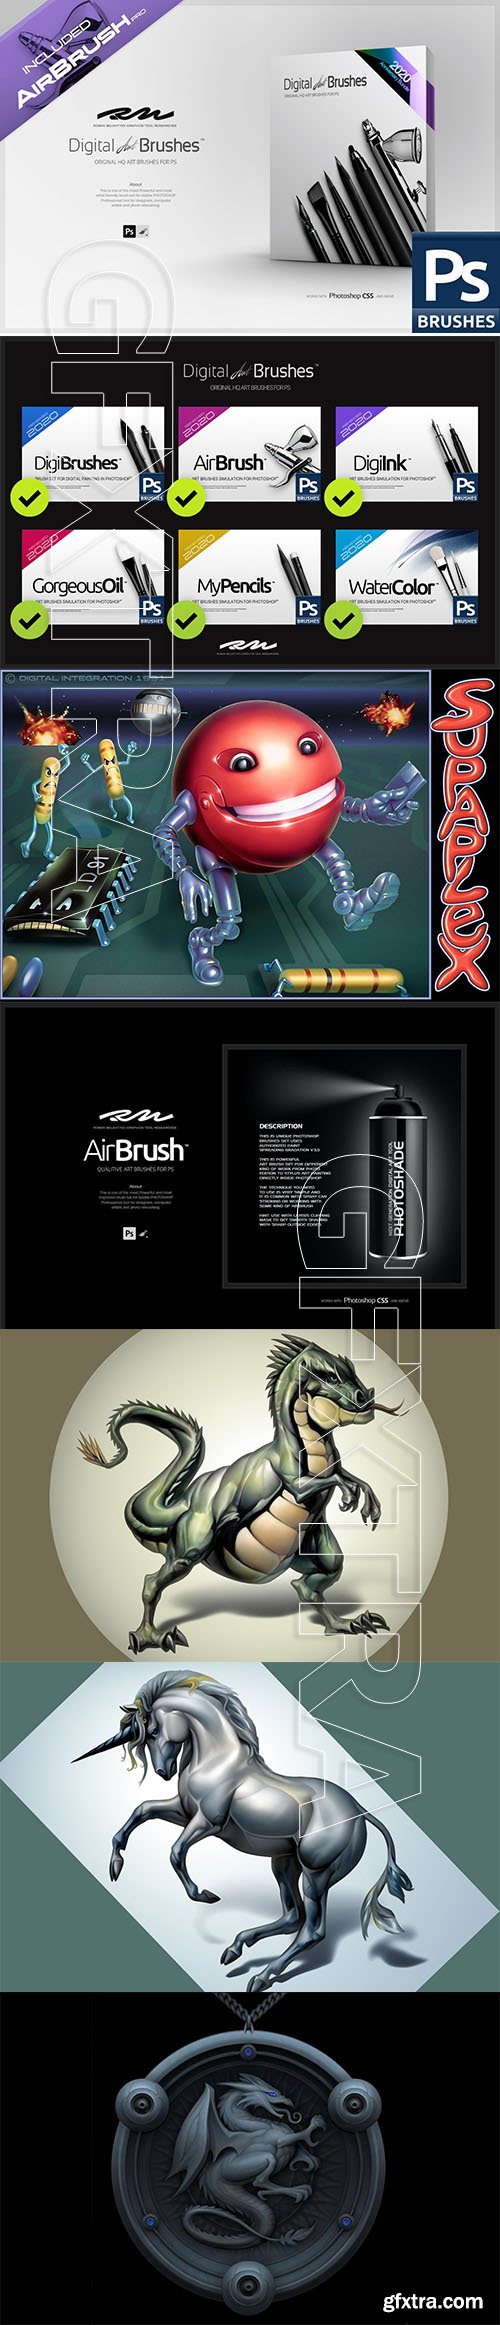 CreativeMarket - RM Digital Art Brushes EE for PS 5567663